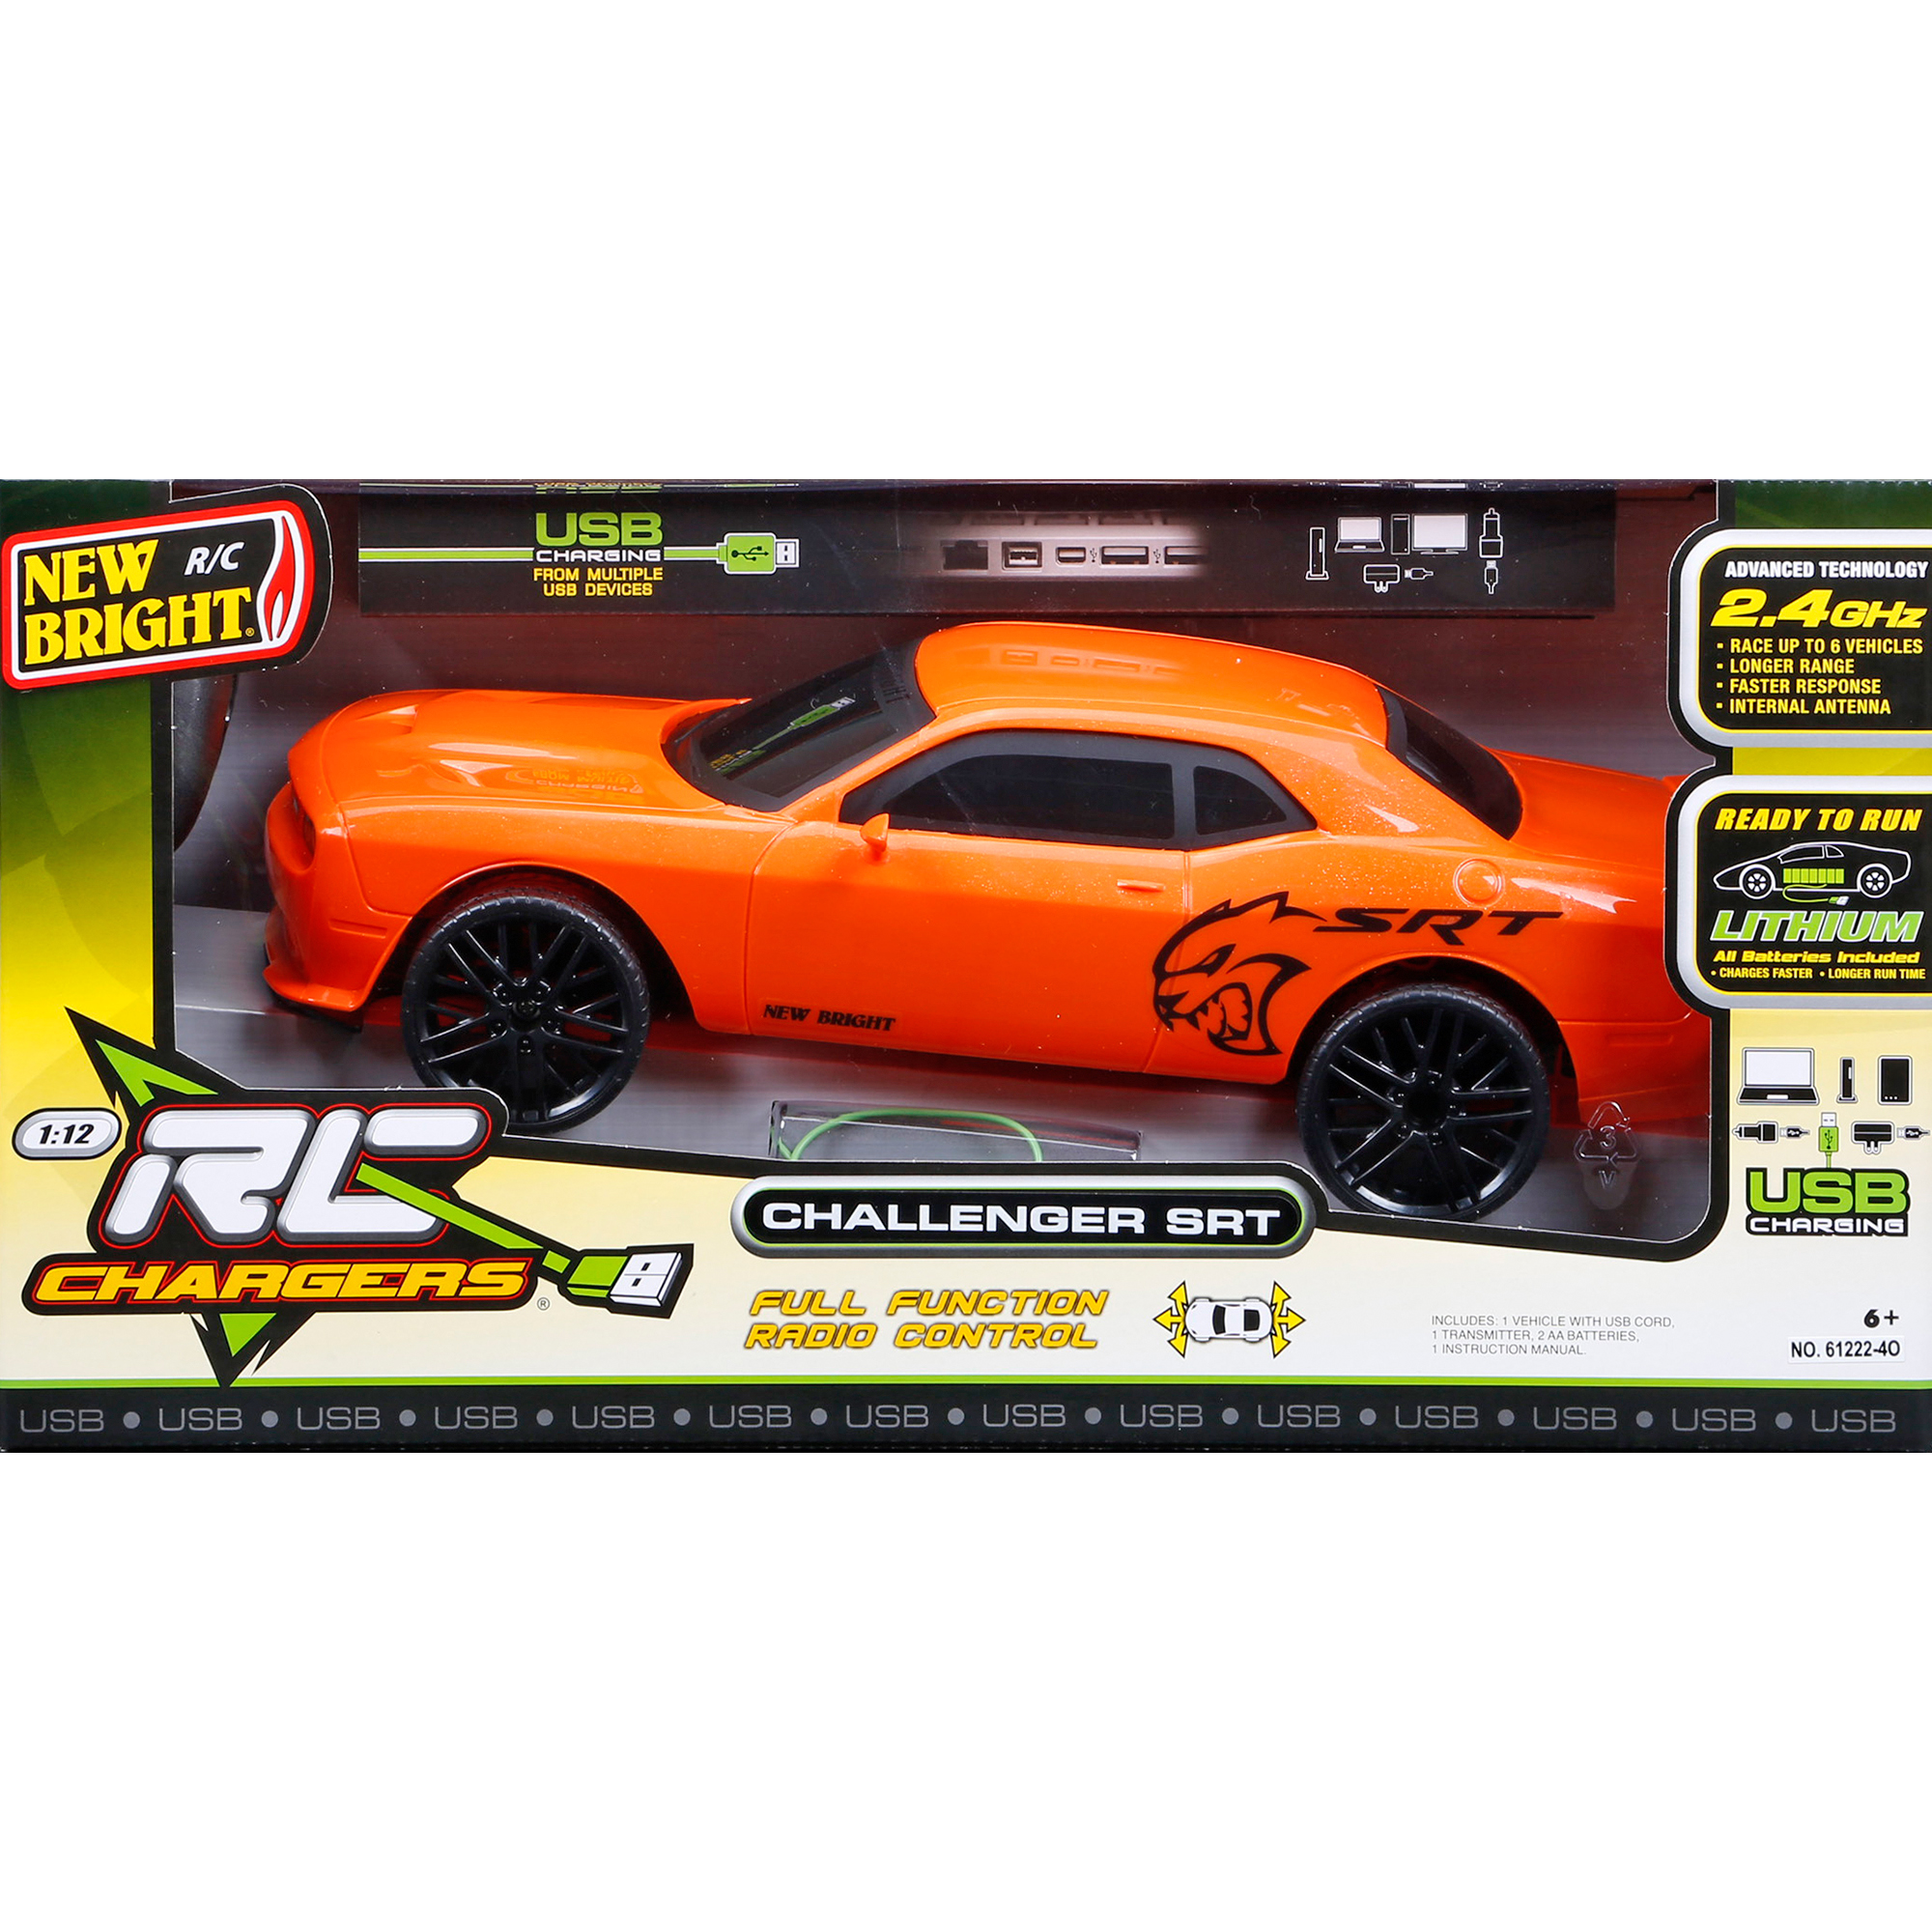 New Bright 1 12 R C Full Function Chargers Challenger Srt Orange